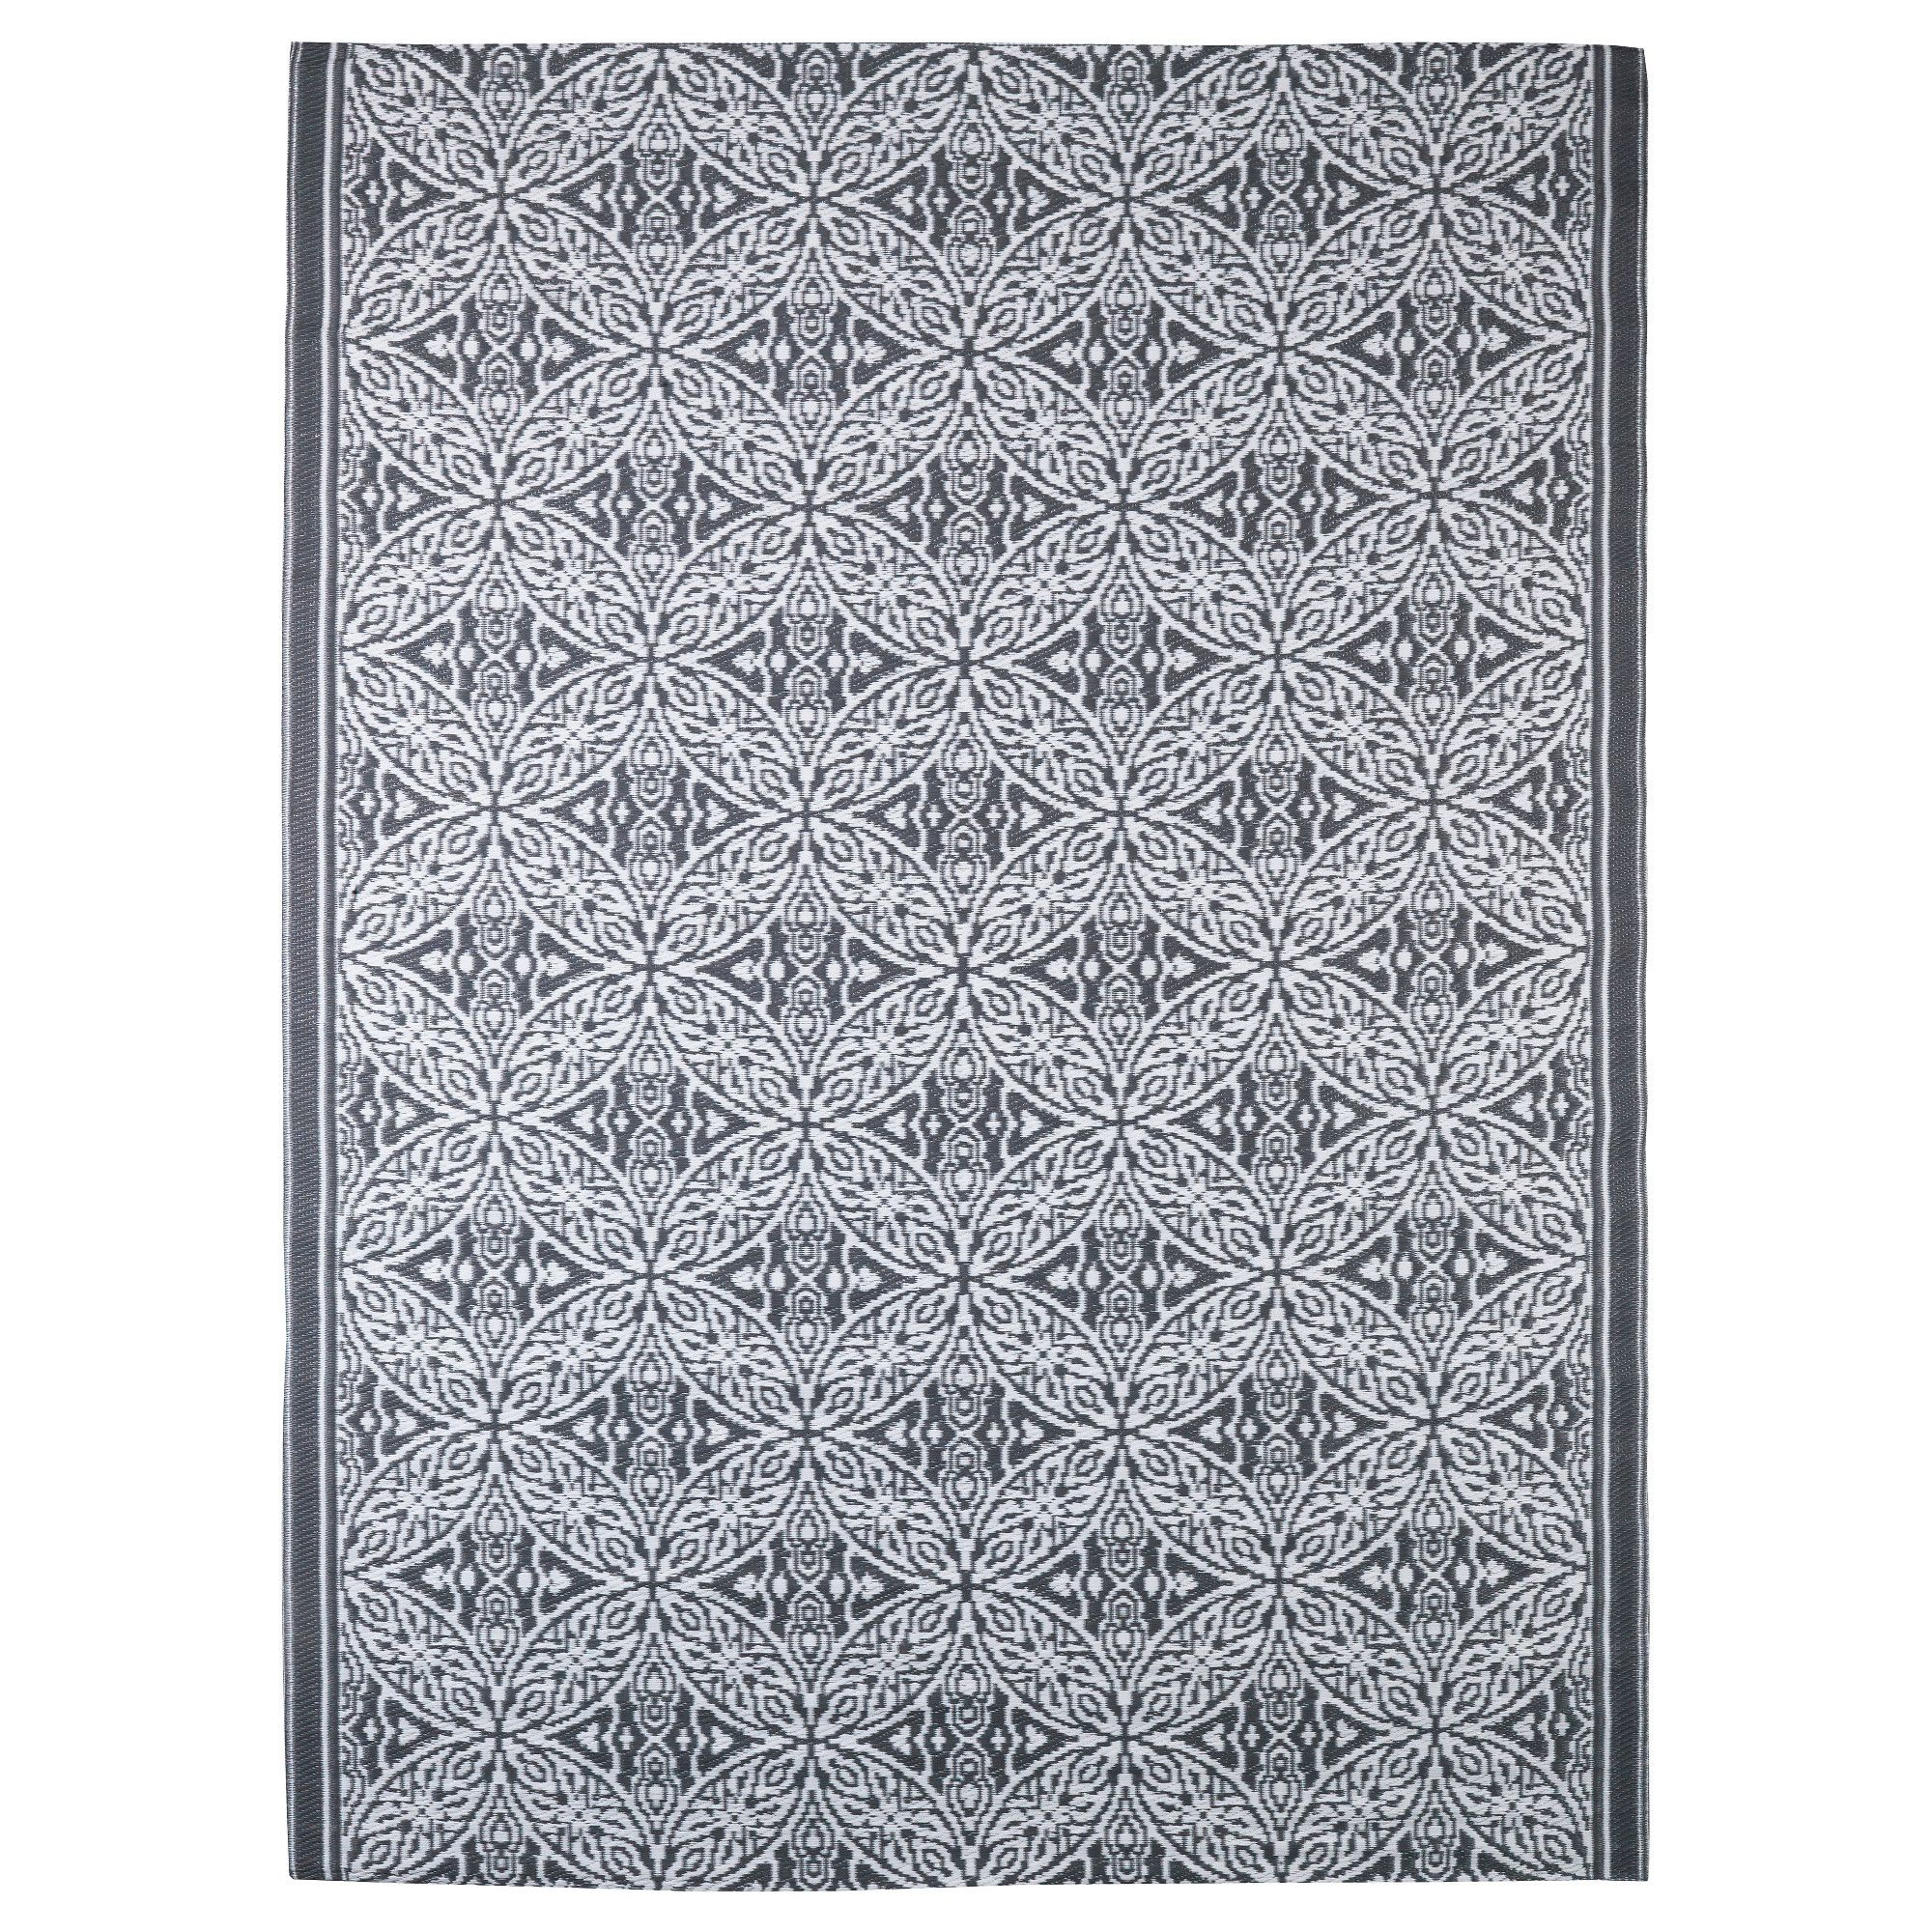 Ikea Sommar 2016 Rug Flatwoven The Rug Is Perfect For